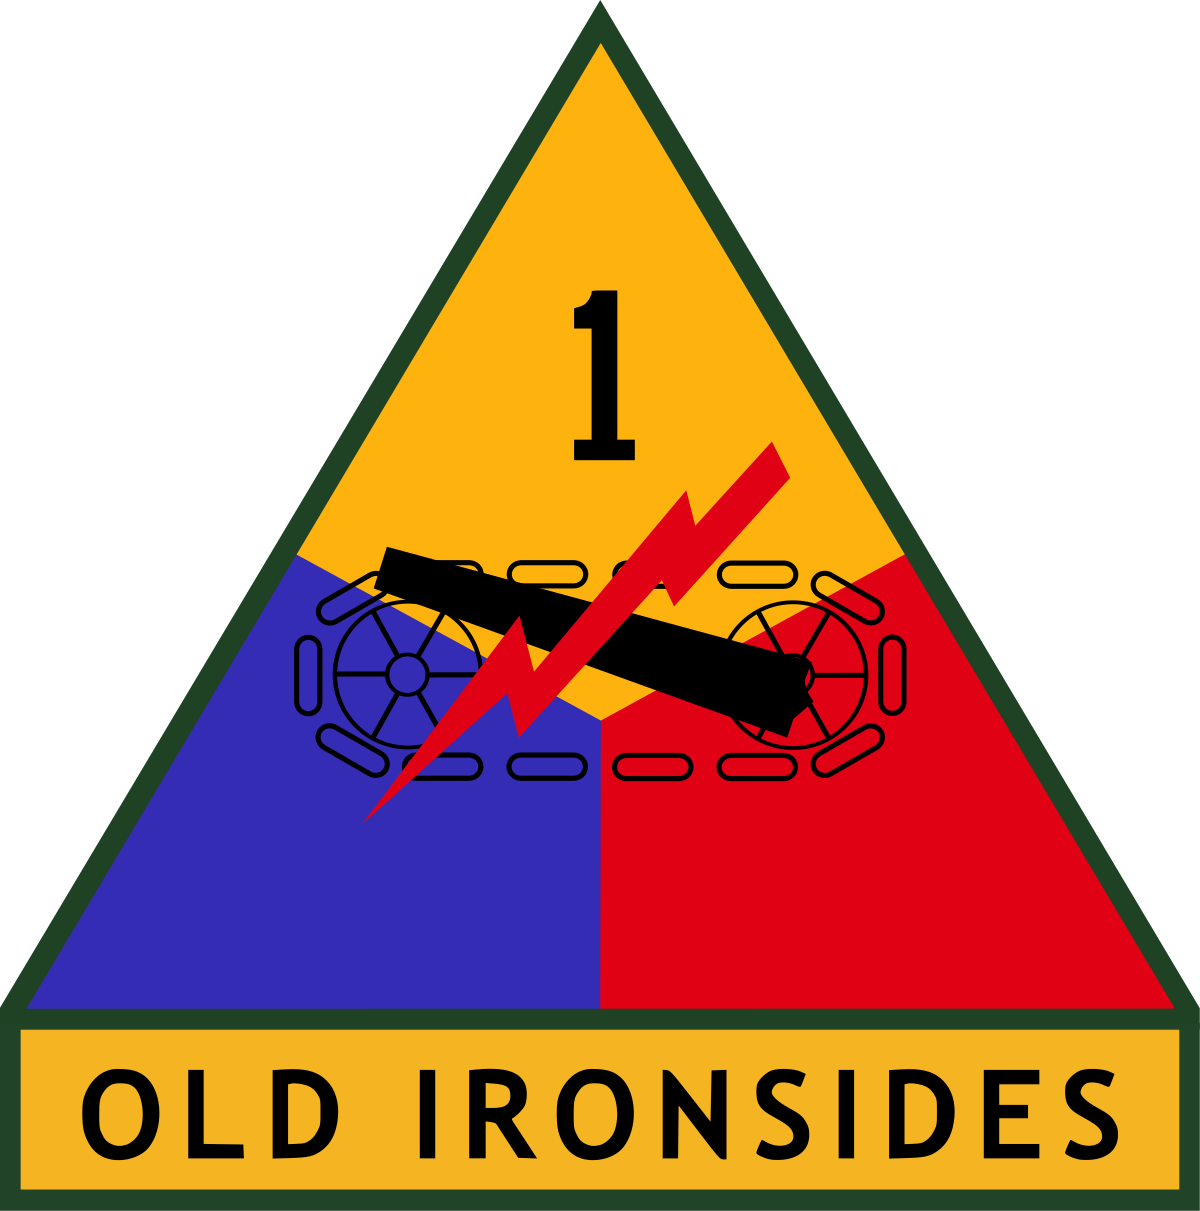 Military svg sign. St armored division